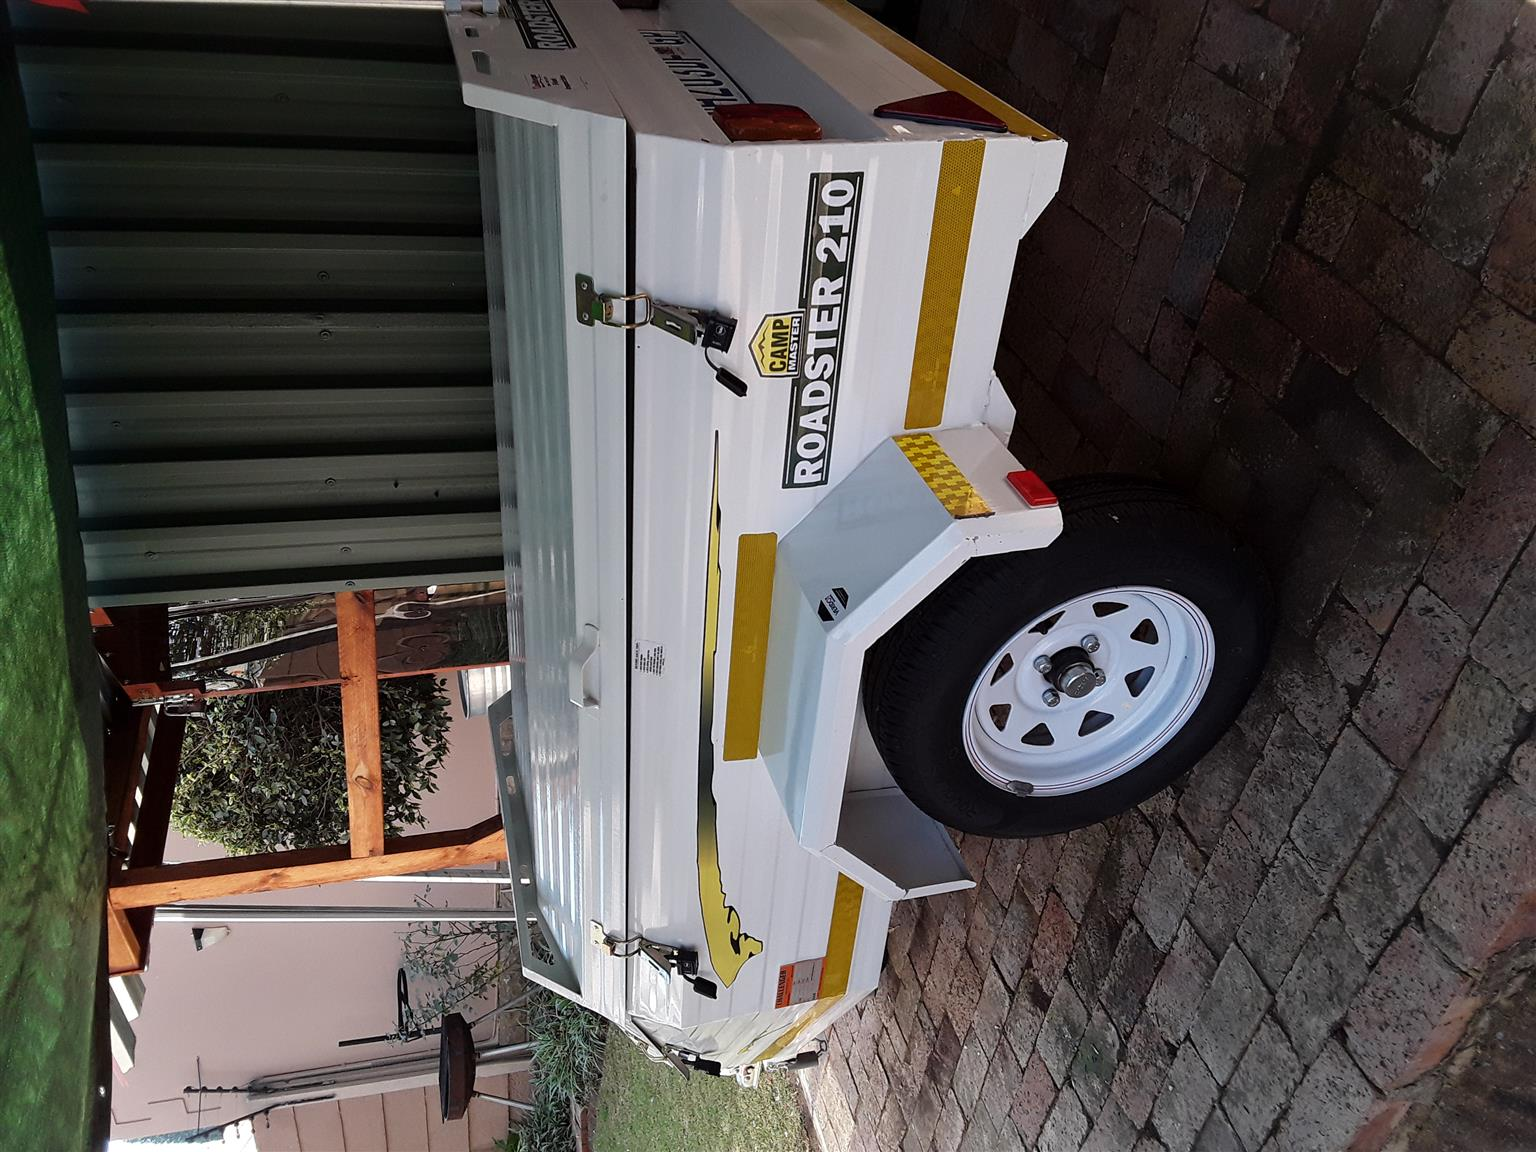 Challenger 5 foot trailer with nose cone and spare wheel